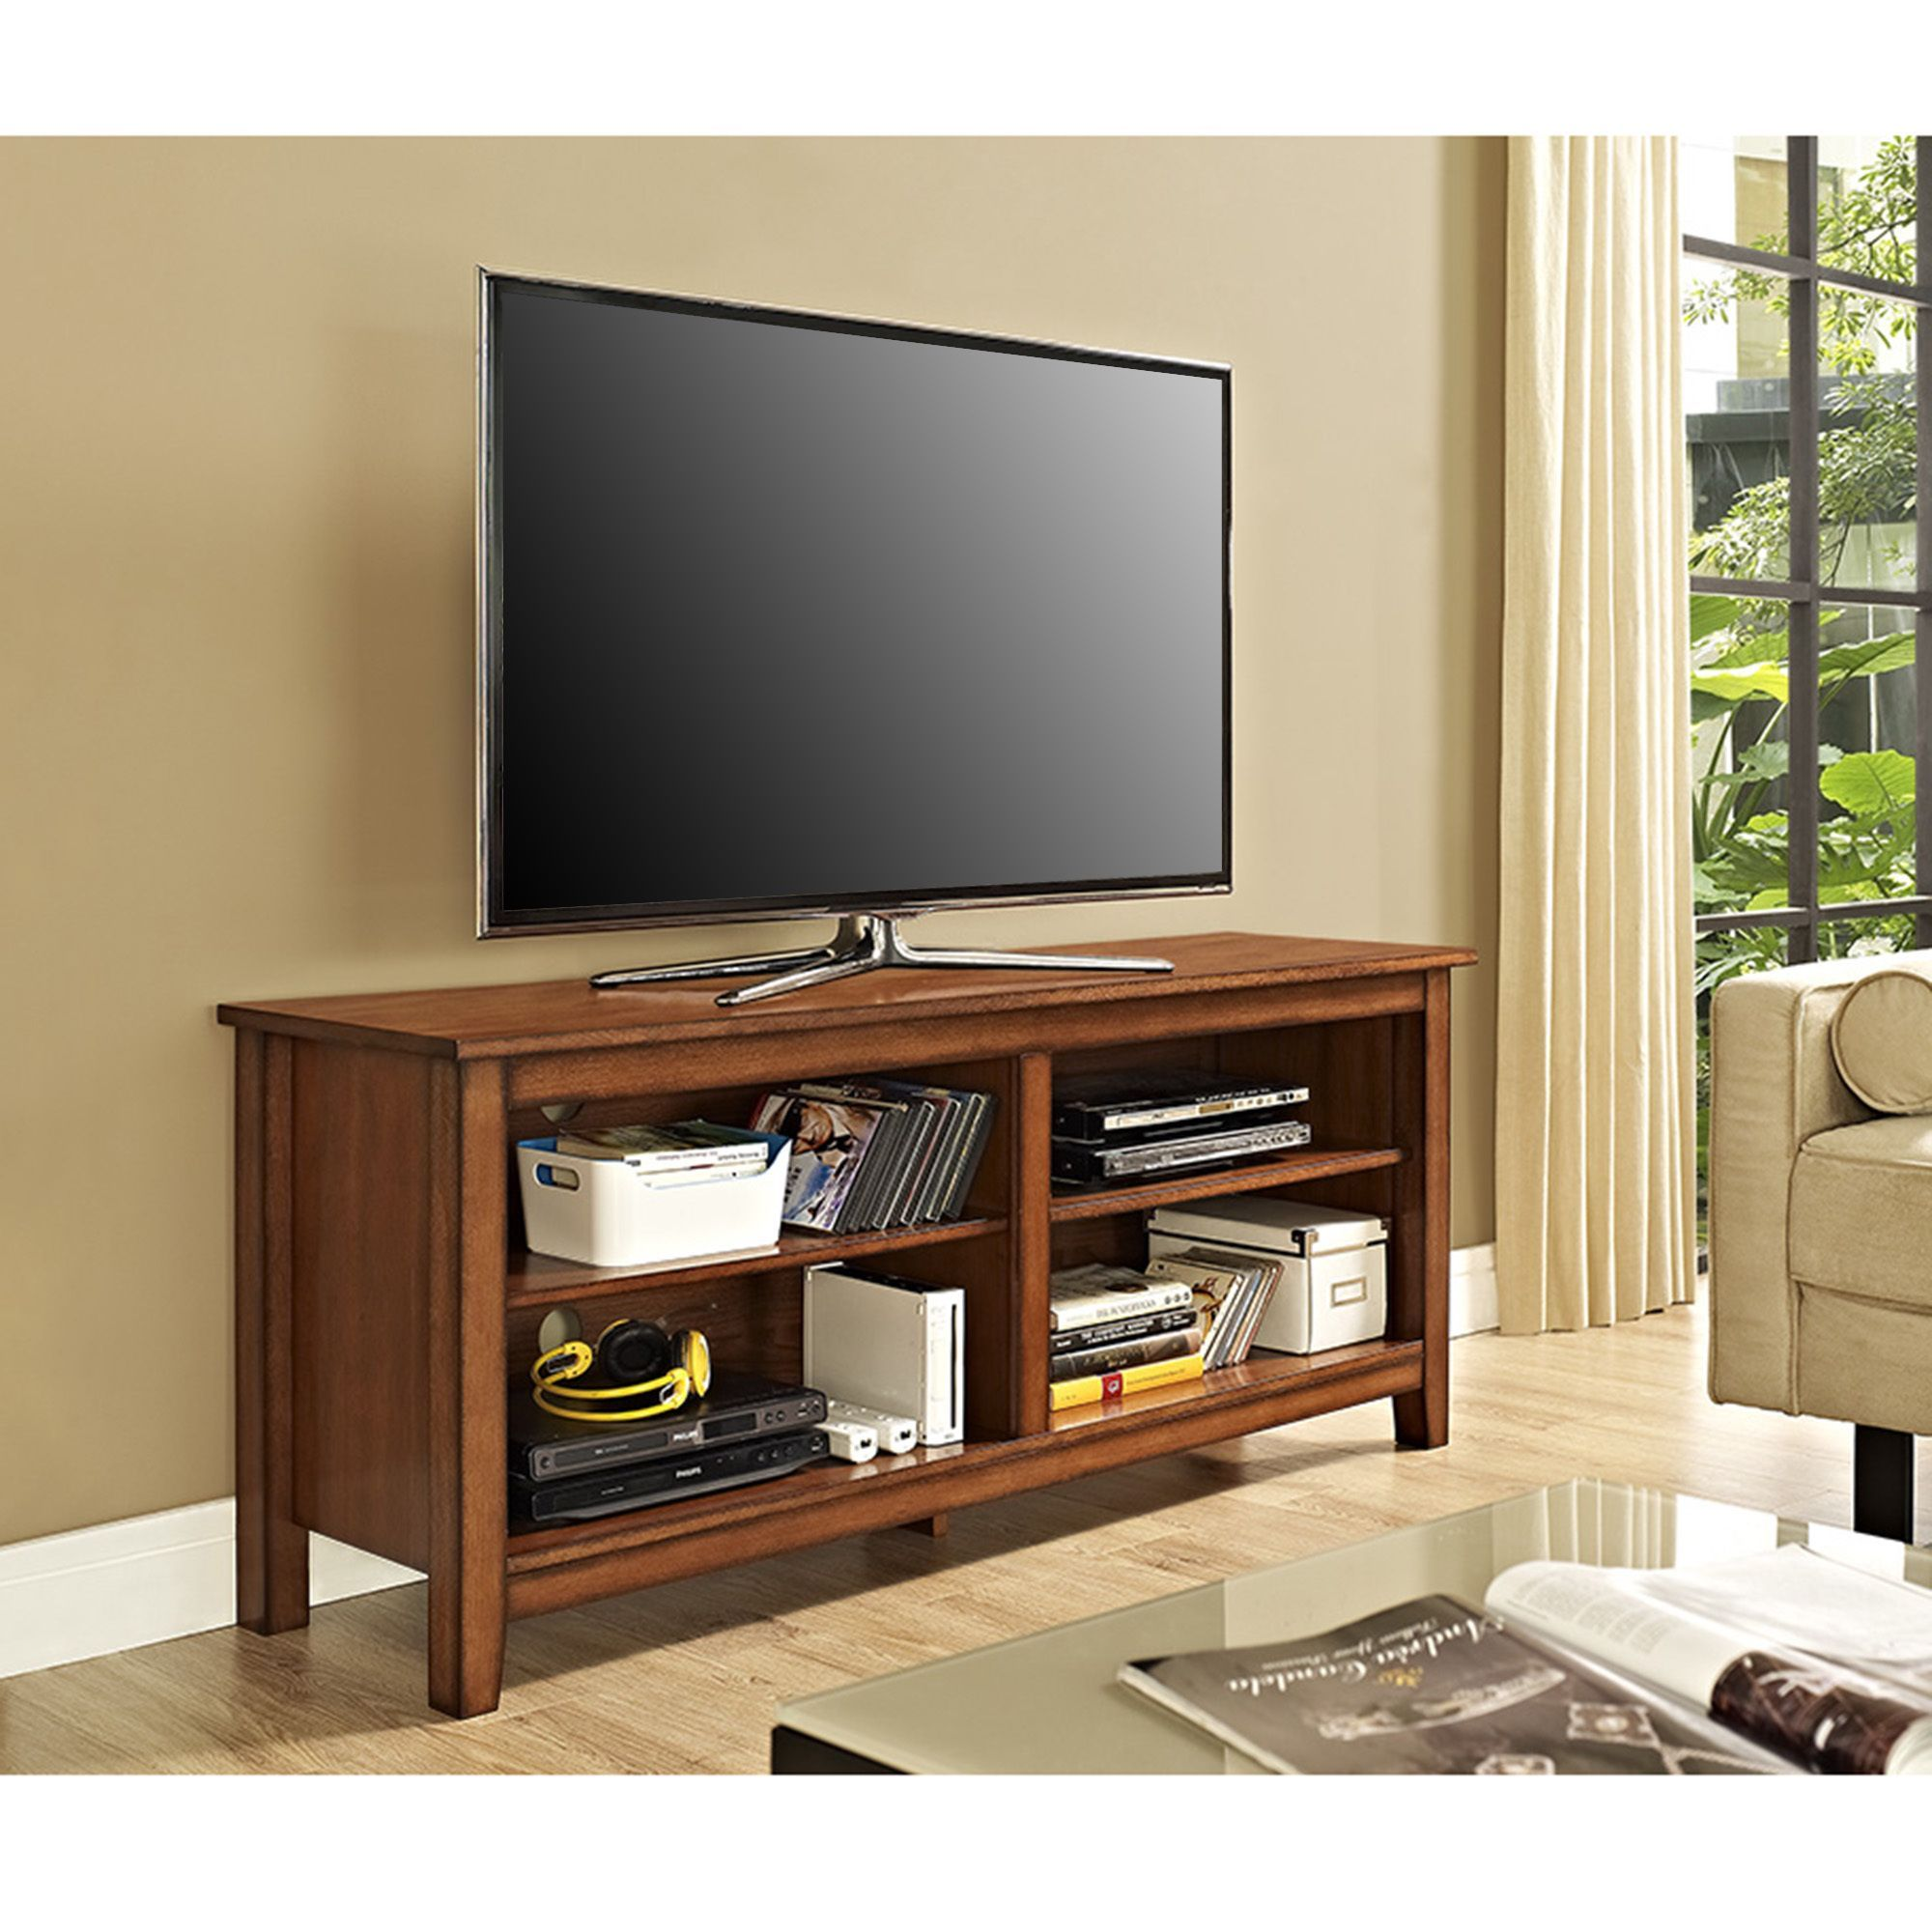 Display Your Tv In Style With This 58 Inch Wood Media Stand Features  Adjustable Shelving